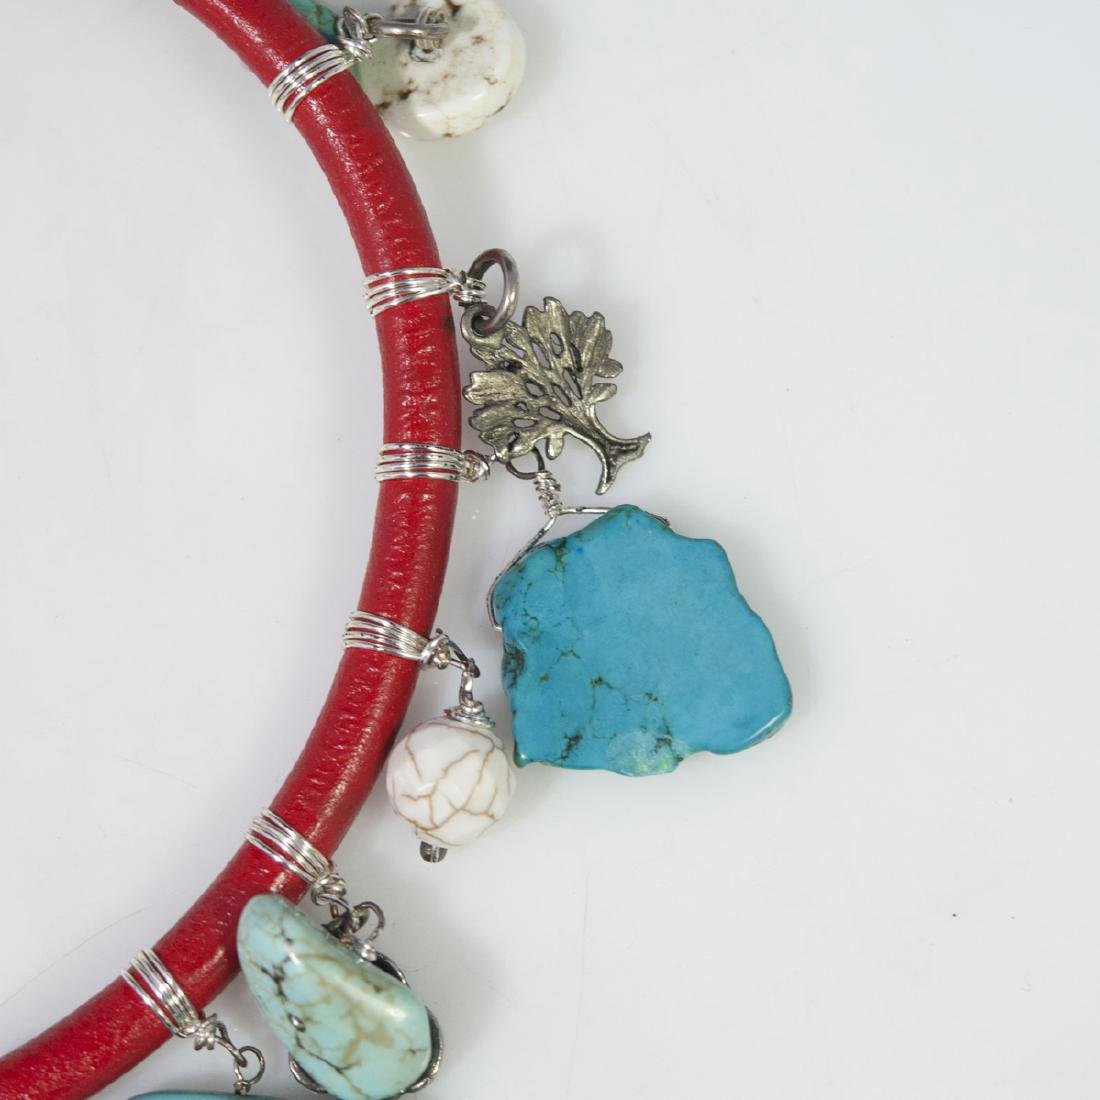 Leather Turquoise Choker Necklace - 3